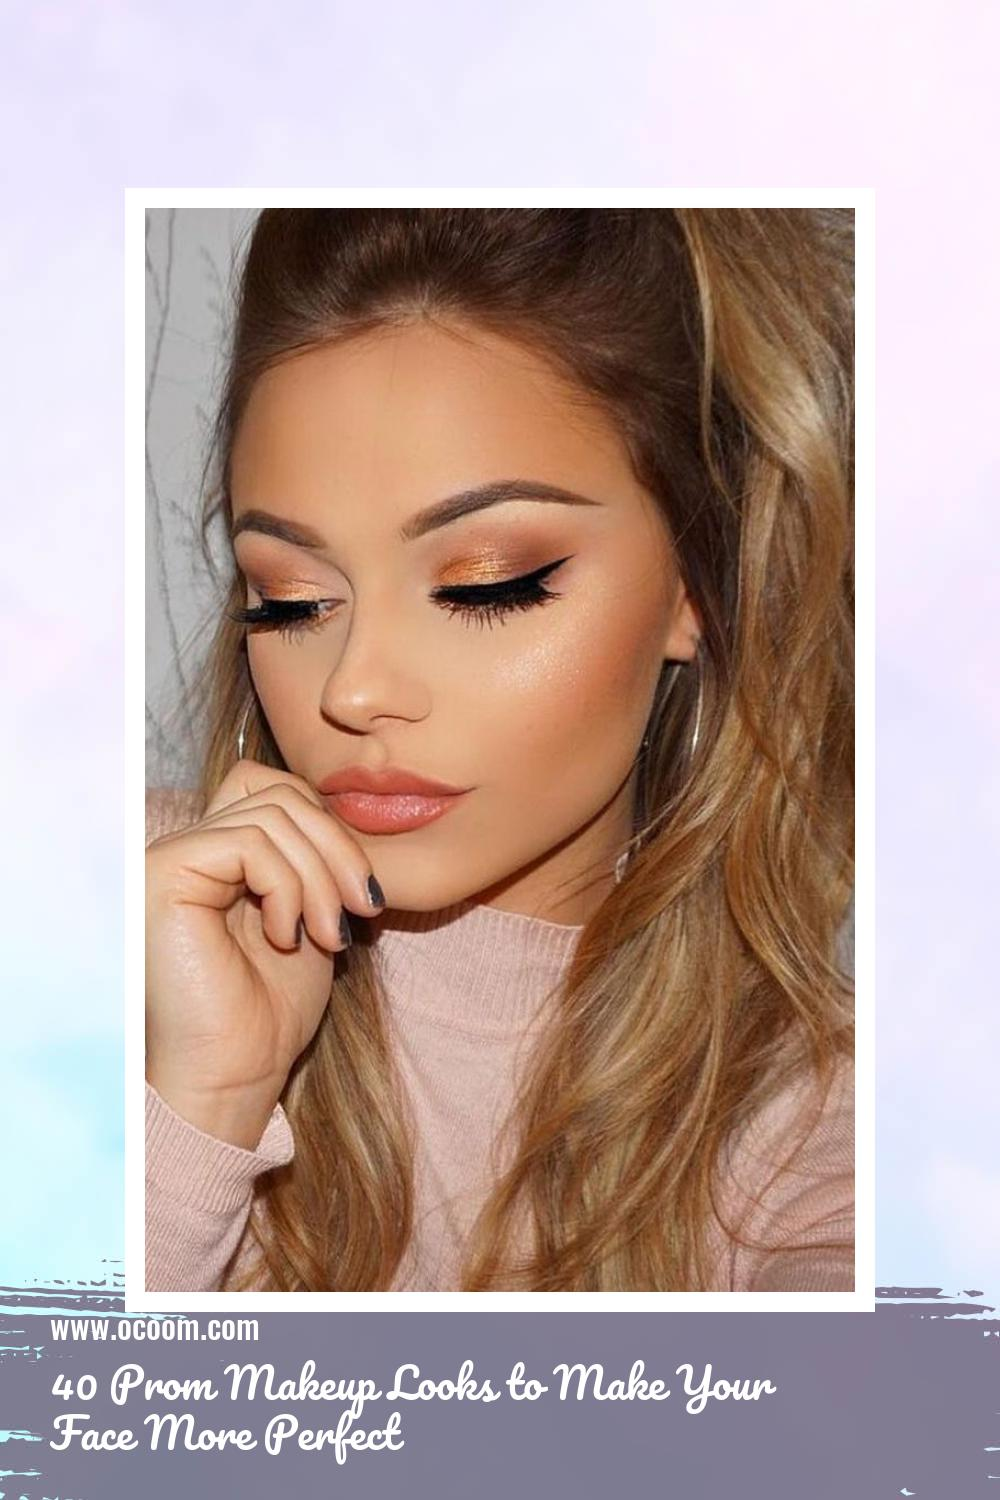 40 Prom Makeup Looks to Make Your Face More Perfect 18